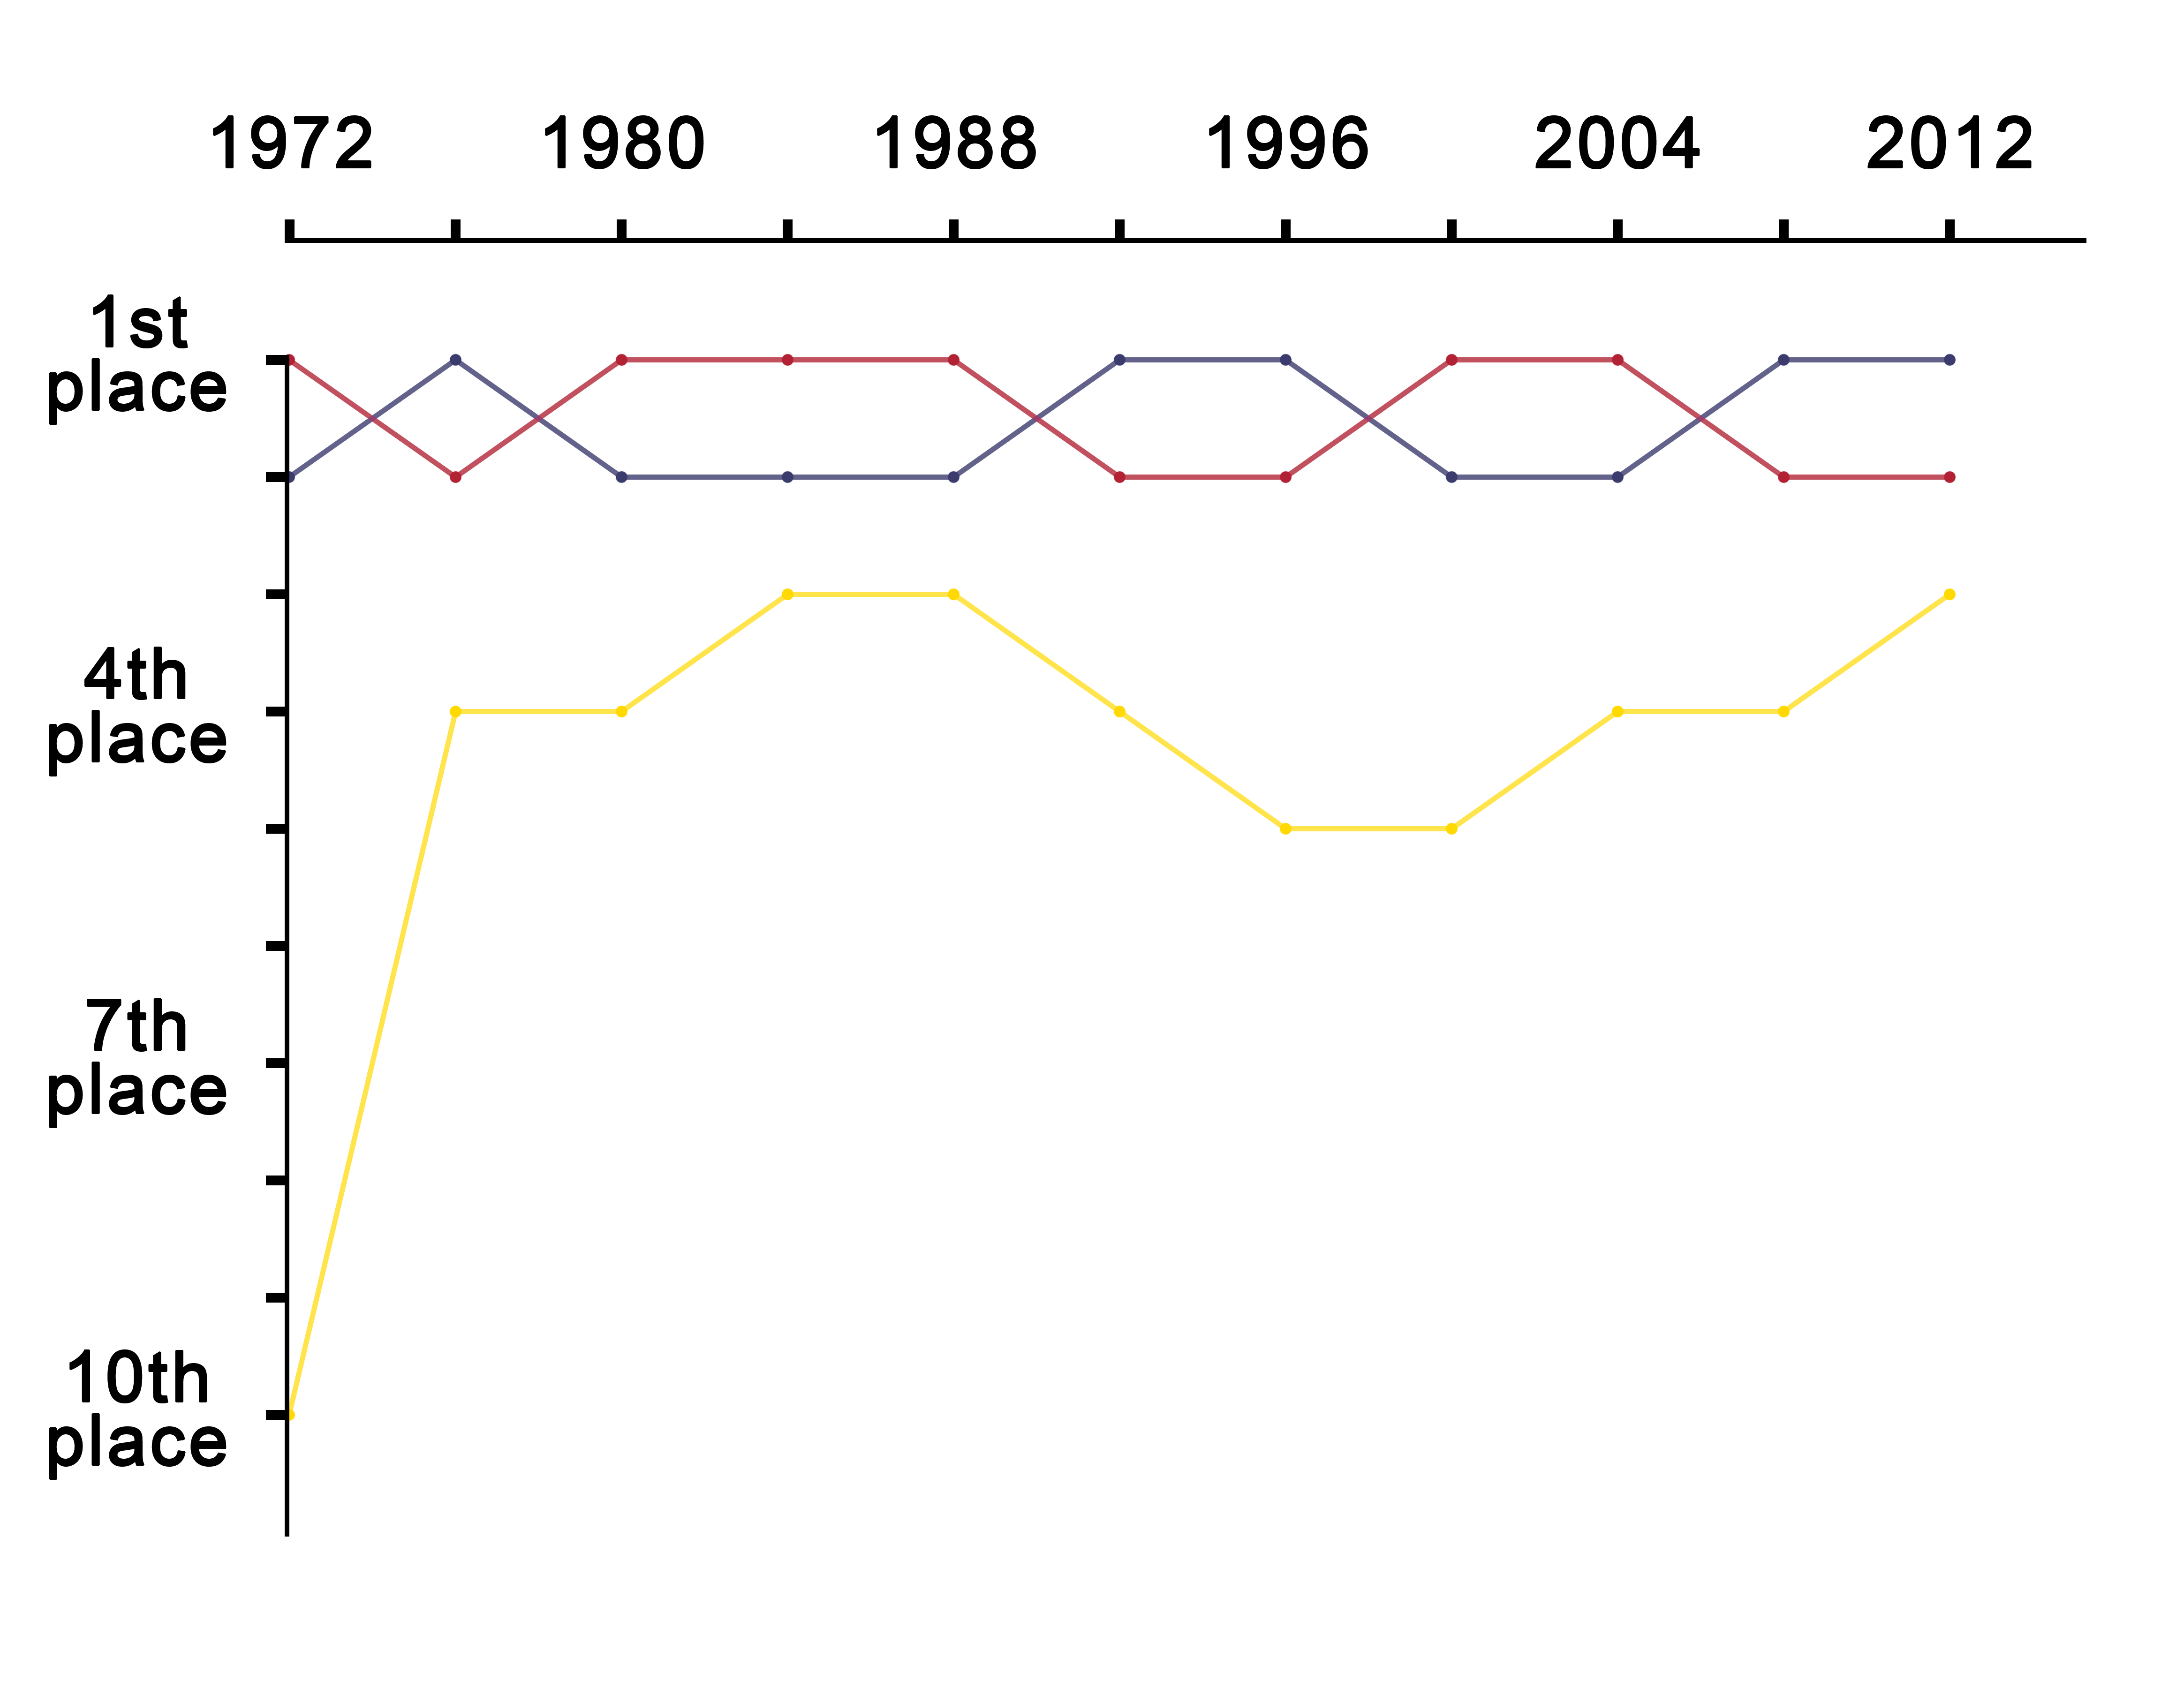 Line graph png. File united states presidential